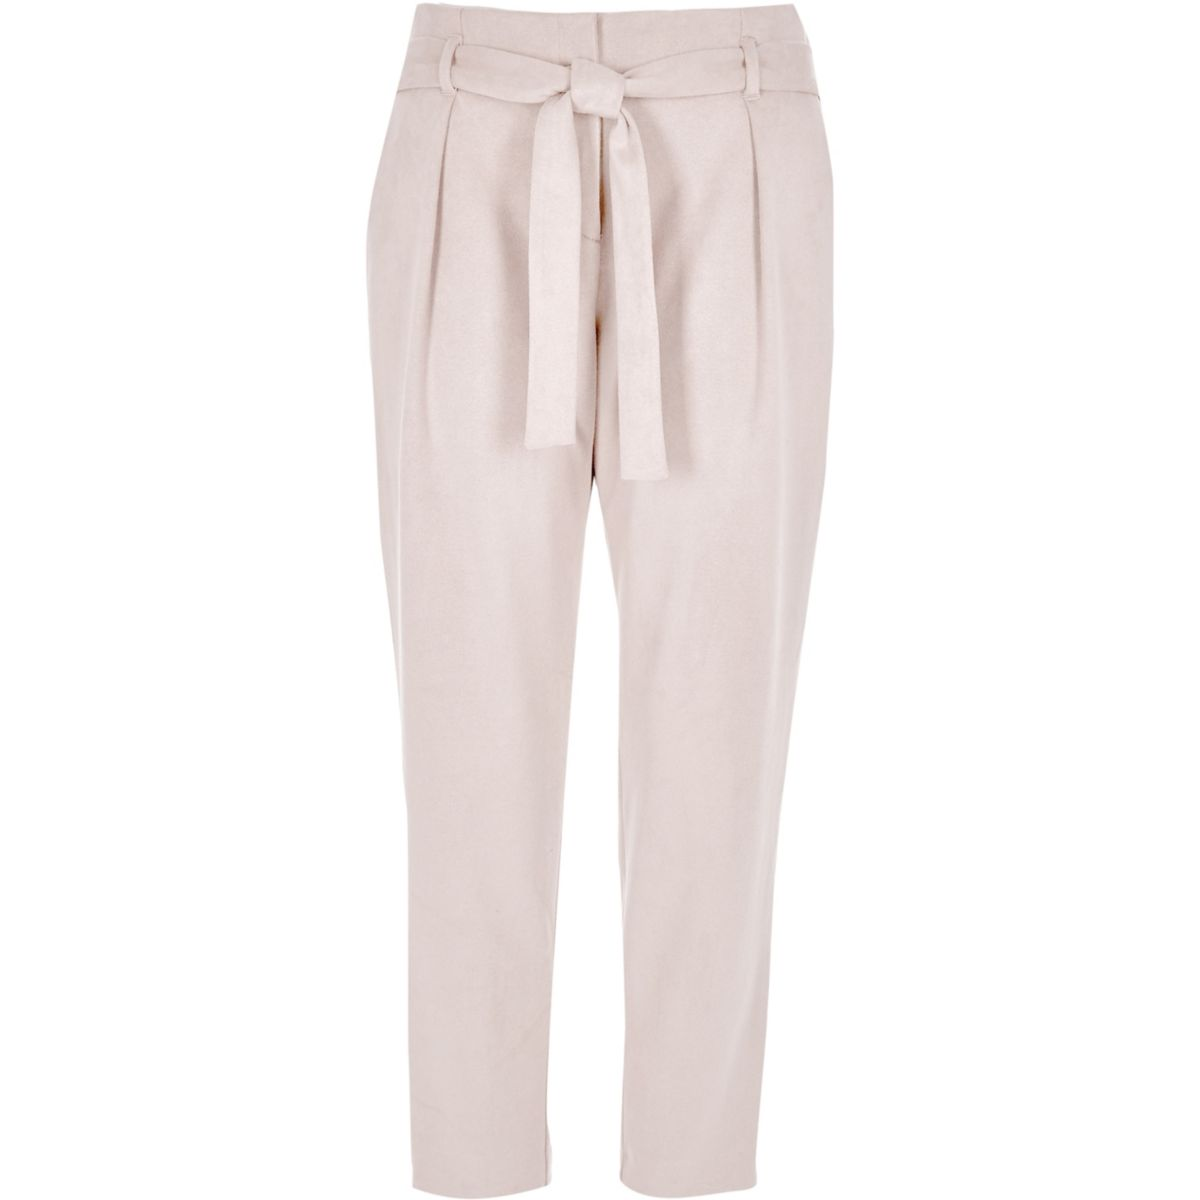 Grey faux suede tie waist tapered pants